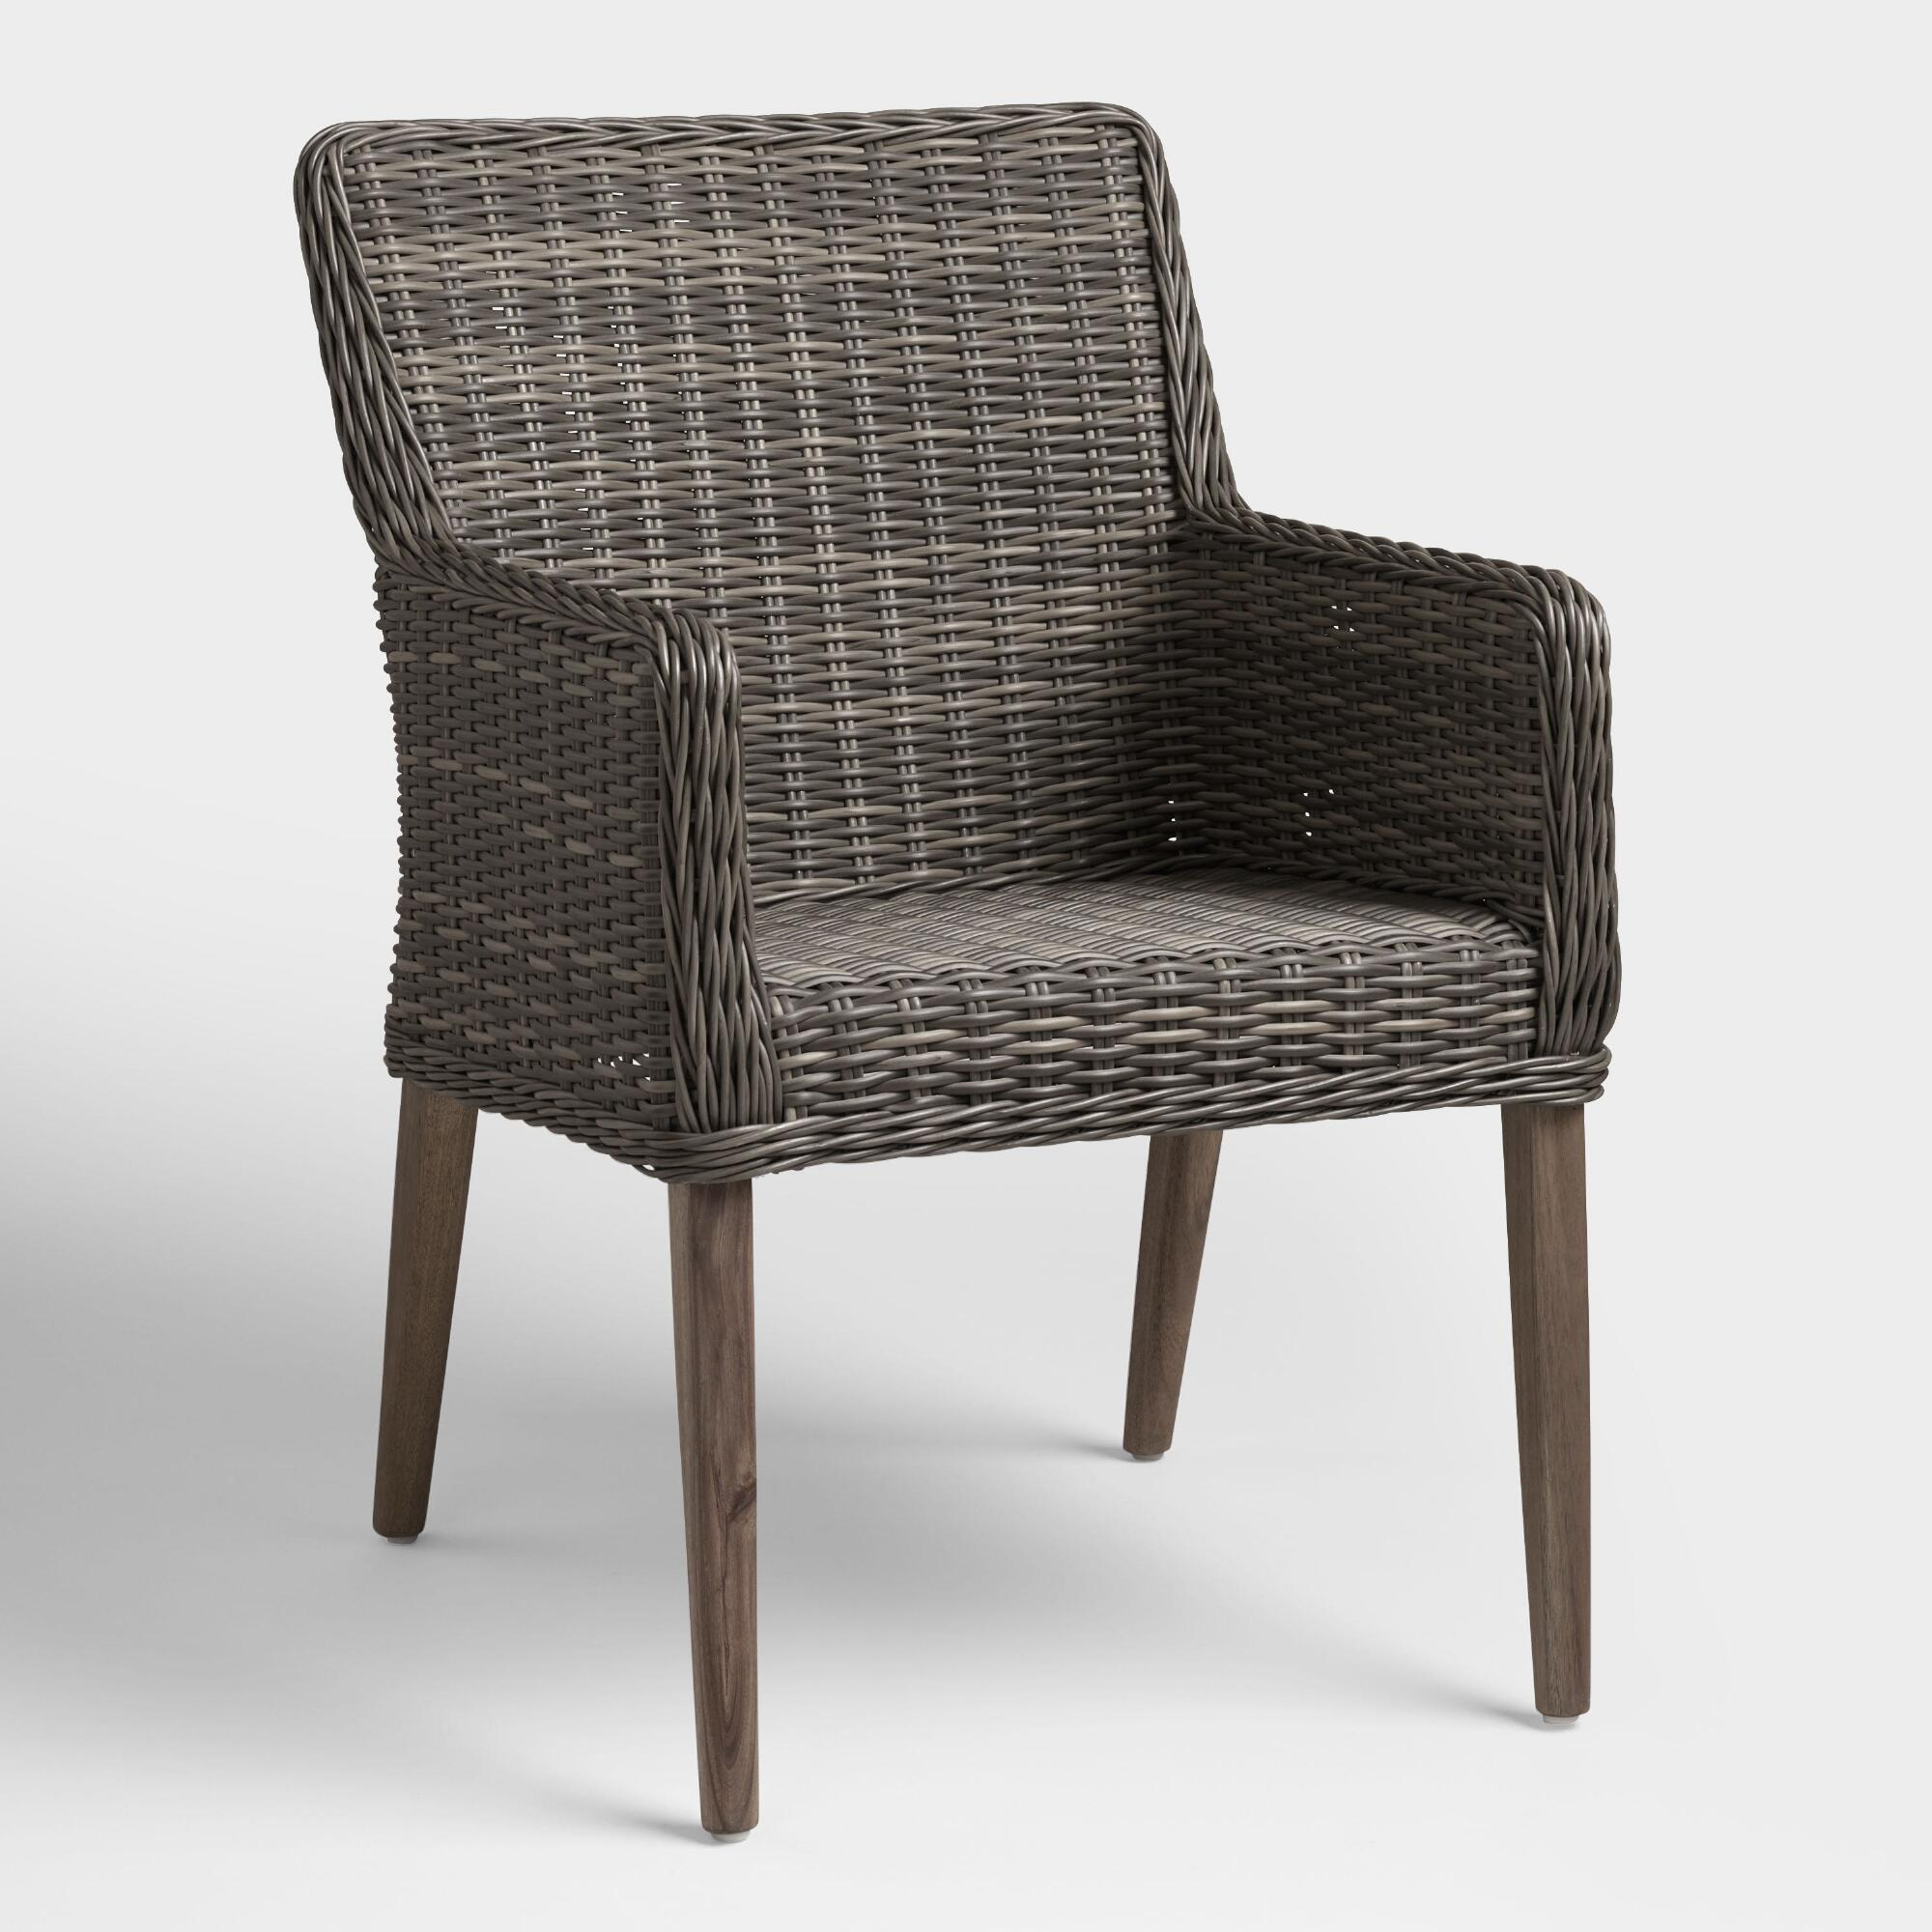 Gray All Weather Wicker Borgia Outdoor Patio Dining Chair - Resin by World Market